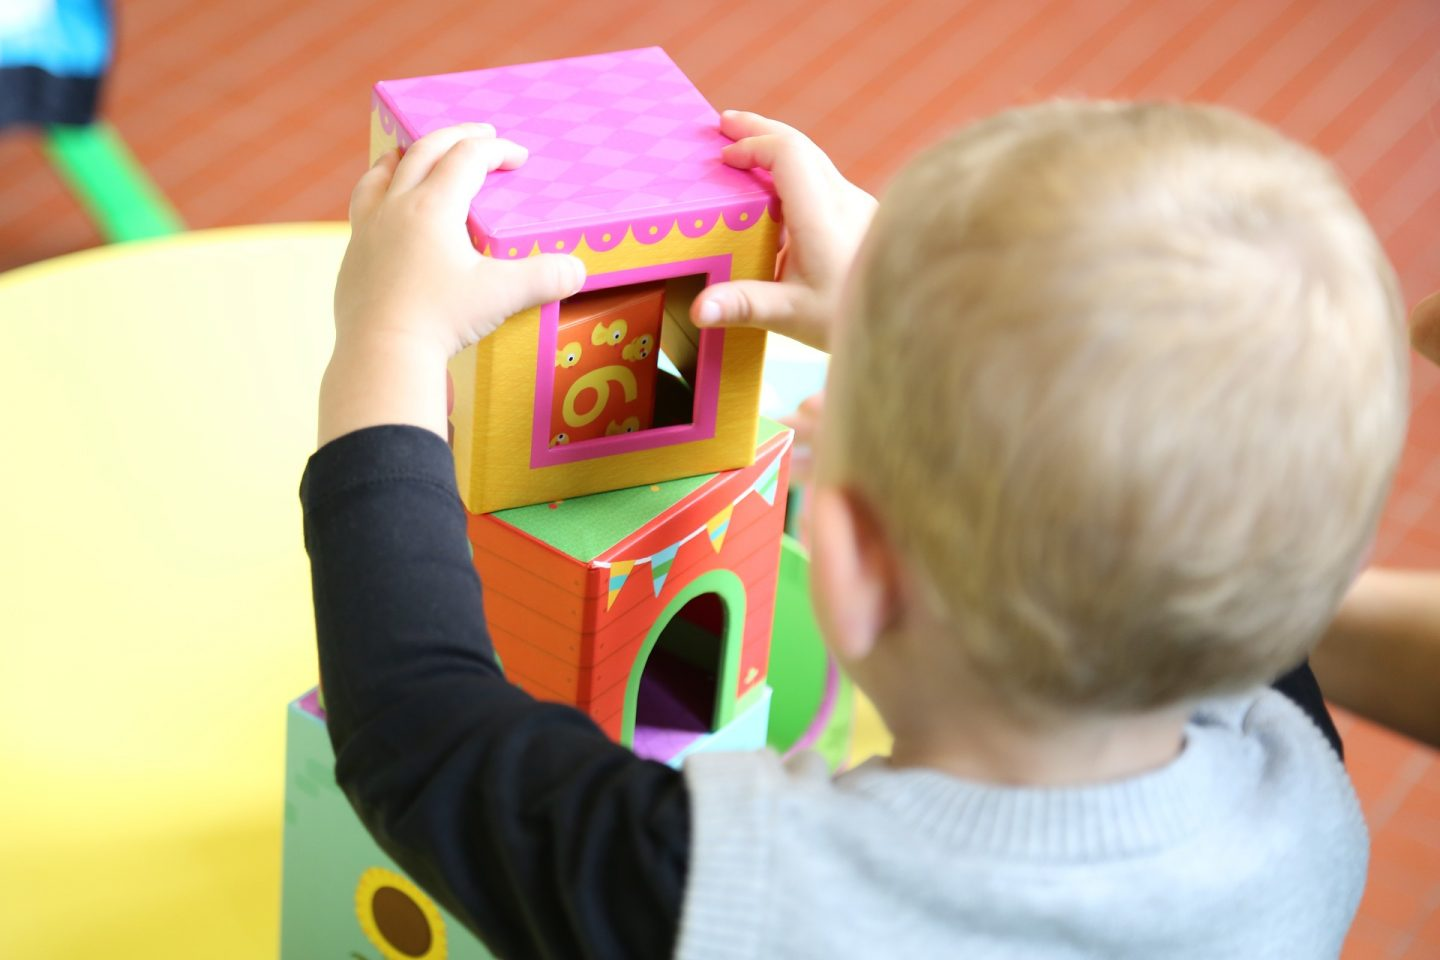 NEWS: 30 hours of free childcare will cause bills to soar